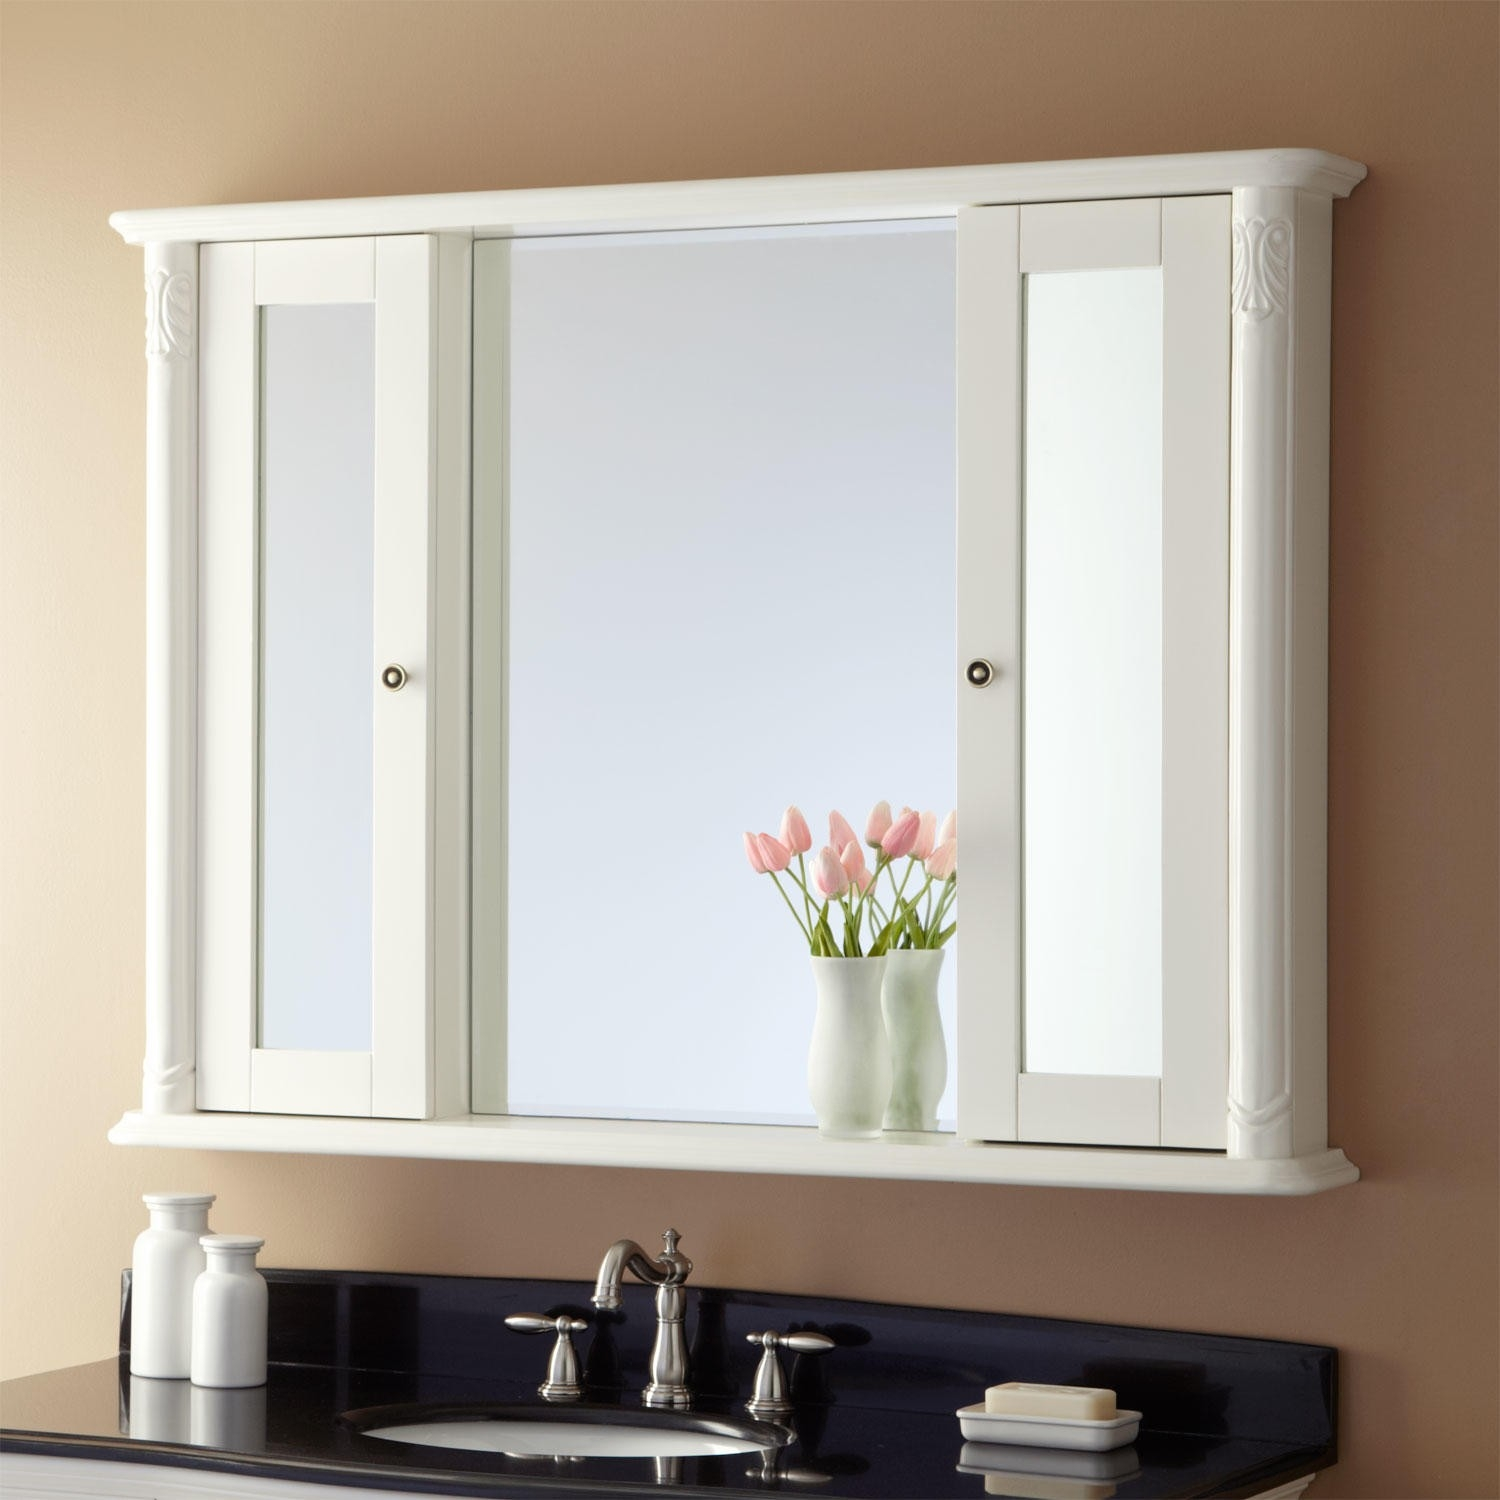 Wall Medicine Cabinet With Mirror Wall Medicine Cabinet With Mirror 48 sedwick medicine cabinet bathroom 1500 X 1500